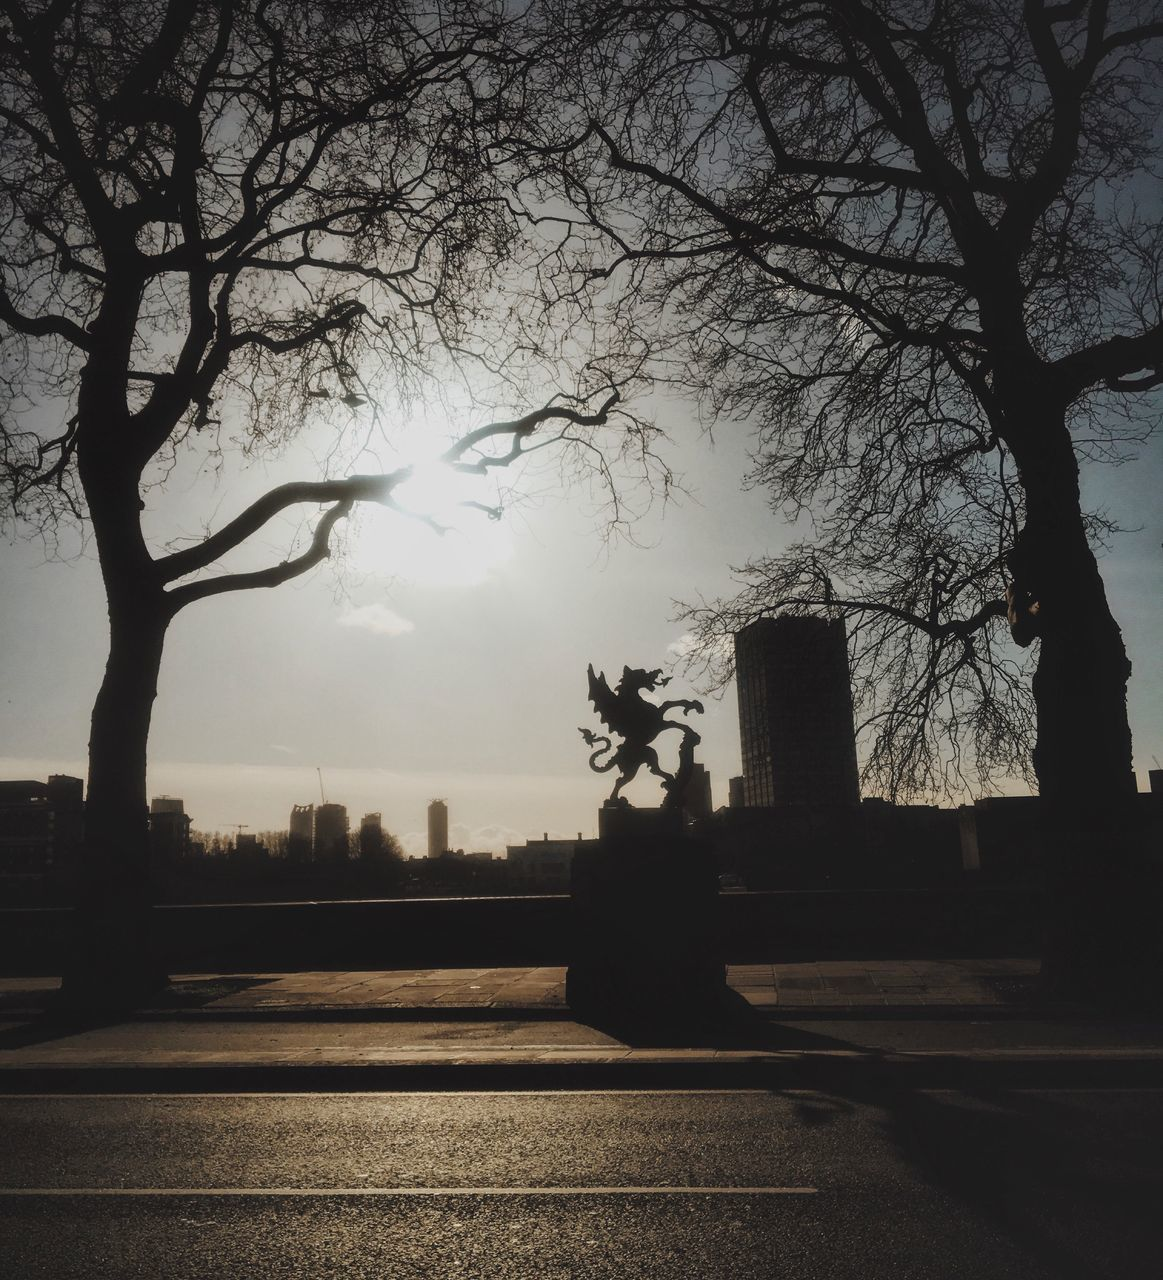 SILHOUETTE OF TREES AND BUILDING